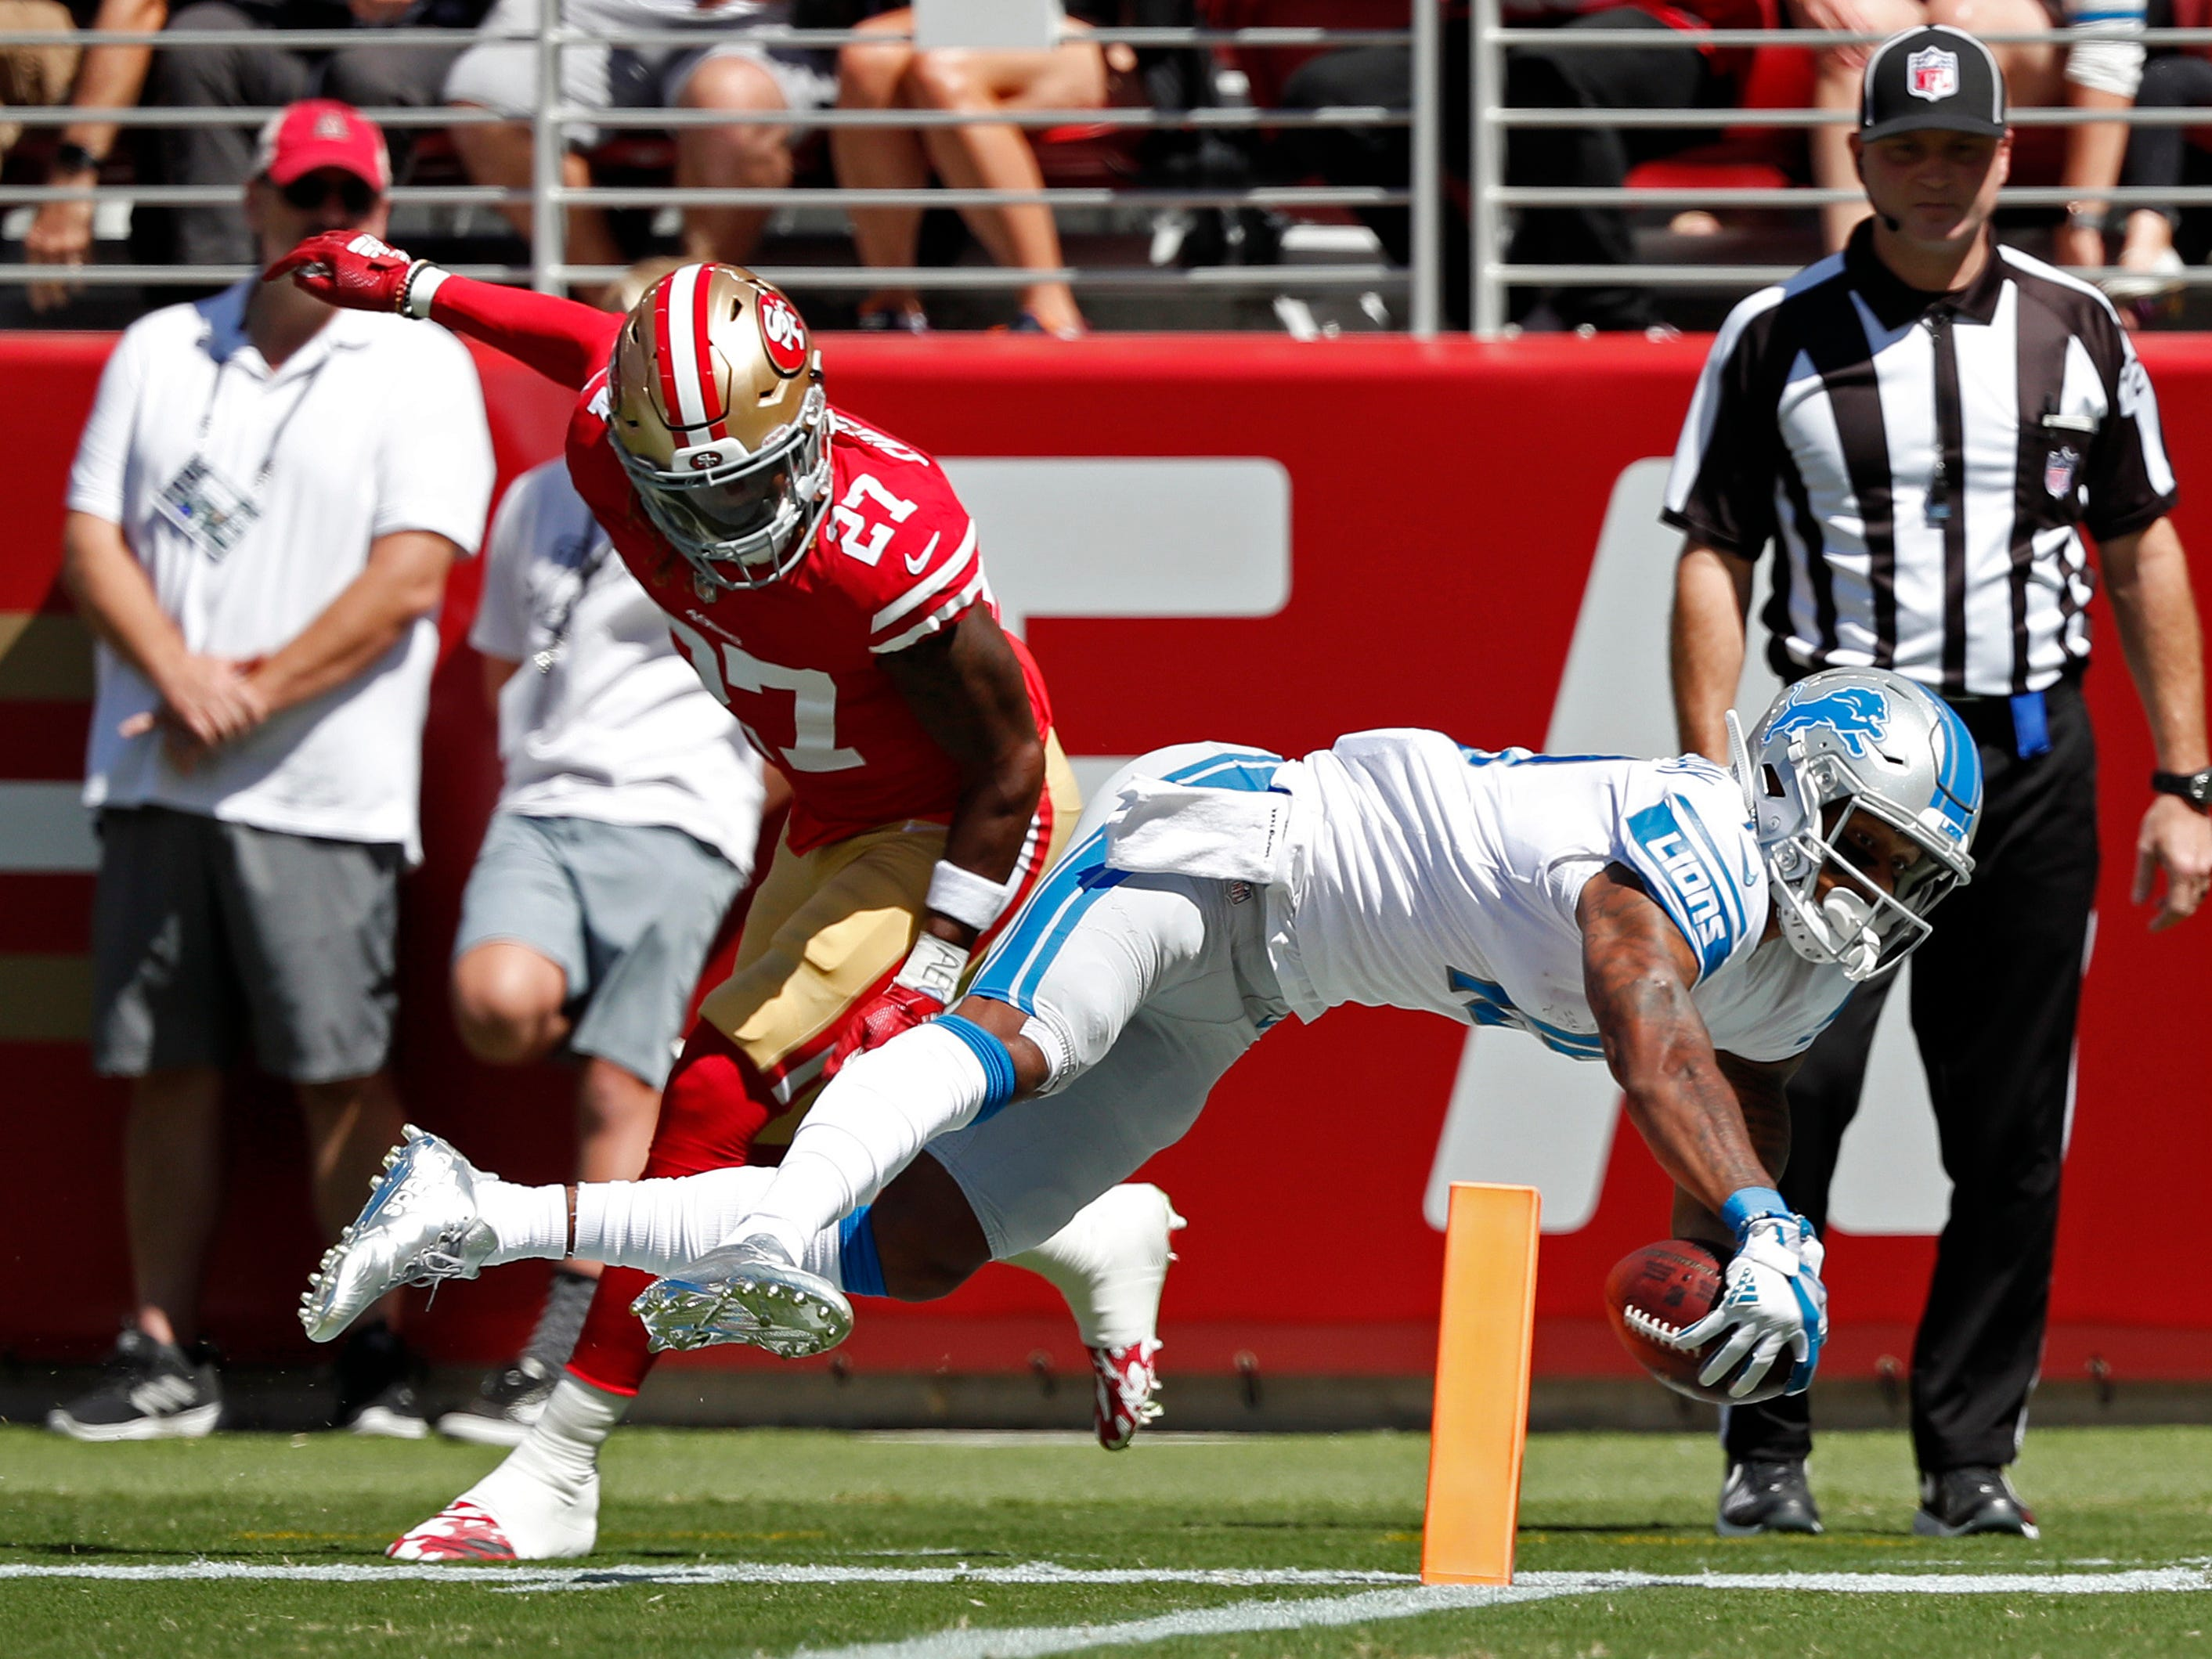 Detroit Lions wide receiver Kenny Golladay, front right, scores a touchdown as San Francisco 49ers defensive back Adrian Colbert (27) looks on during the first half.